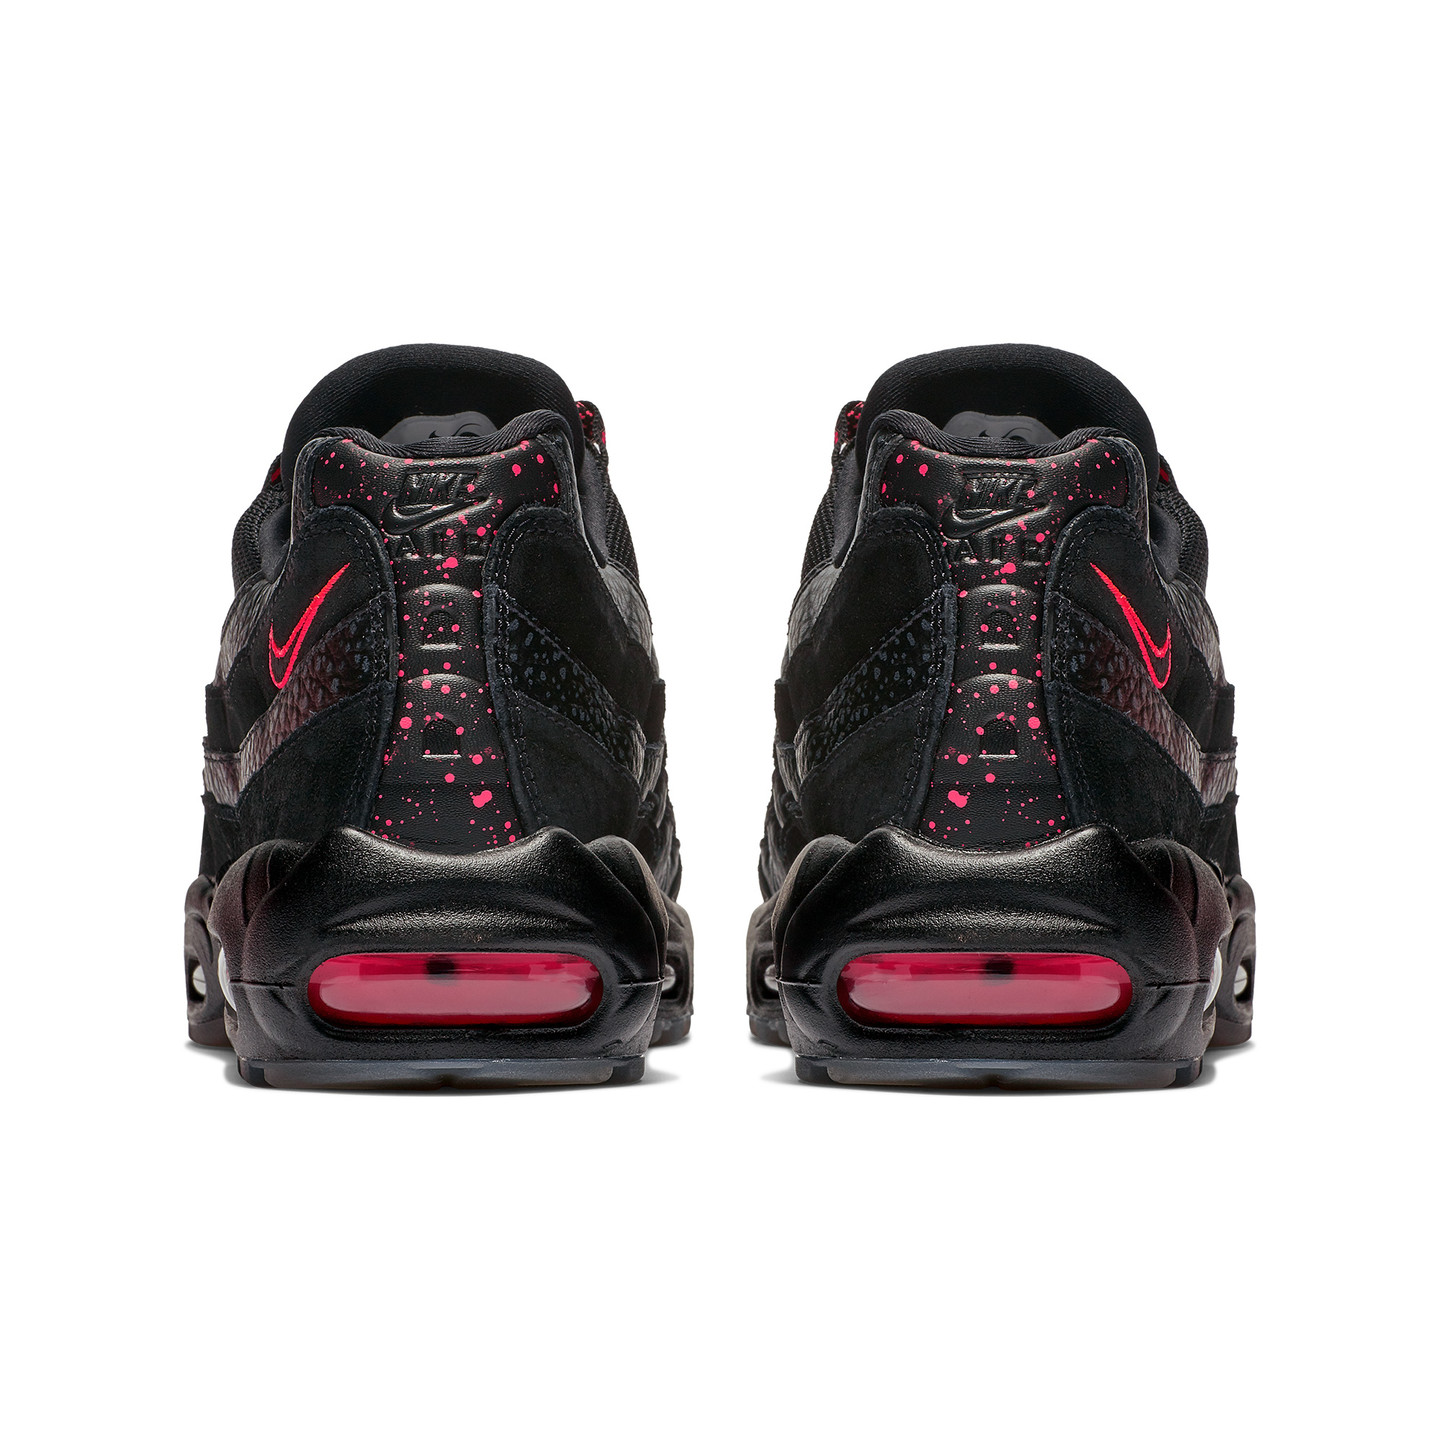 Nike Air Max 95 'Runnin - Gunnin' Black / Infrared AV7014-001